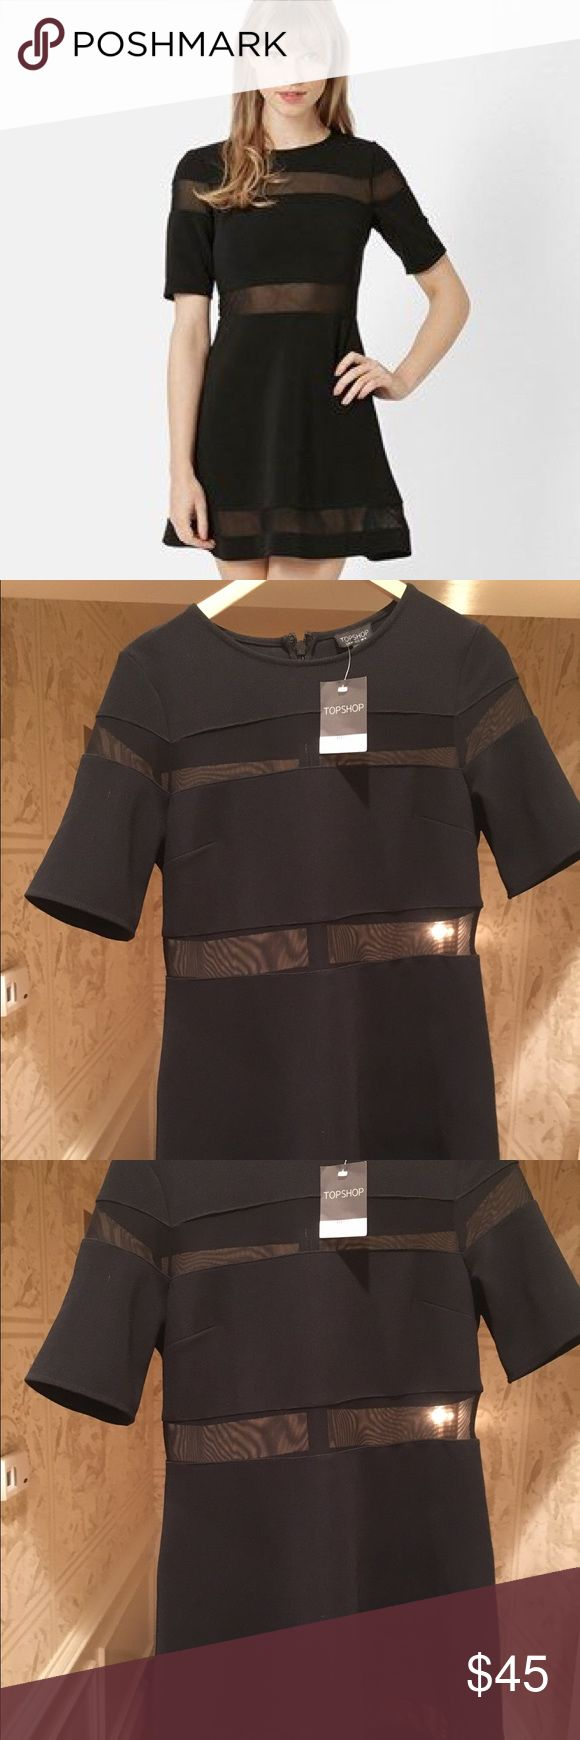 NWT Topshop Sheer Black Panels Skater Dress New with Tags! This is a size 12 Topshop dress in black with sheer panels. Very stylish sheer panels perfect for a formal event. In new condition, unworn, with tags. Please let me know if you have any questions! 💕💕 Topshop Dresses Mini